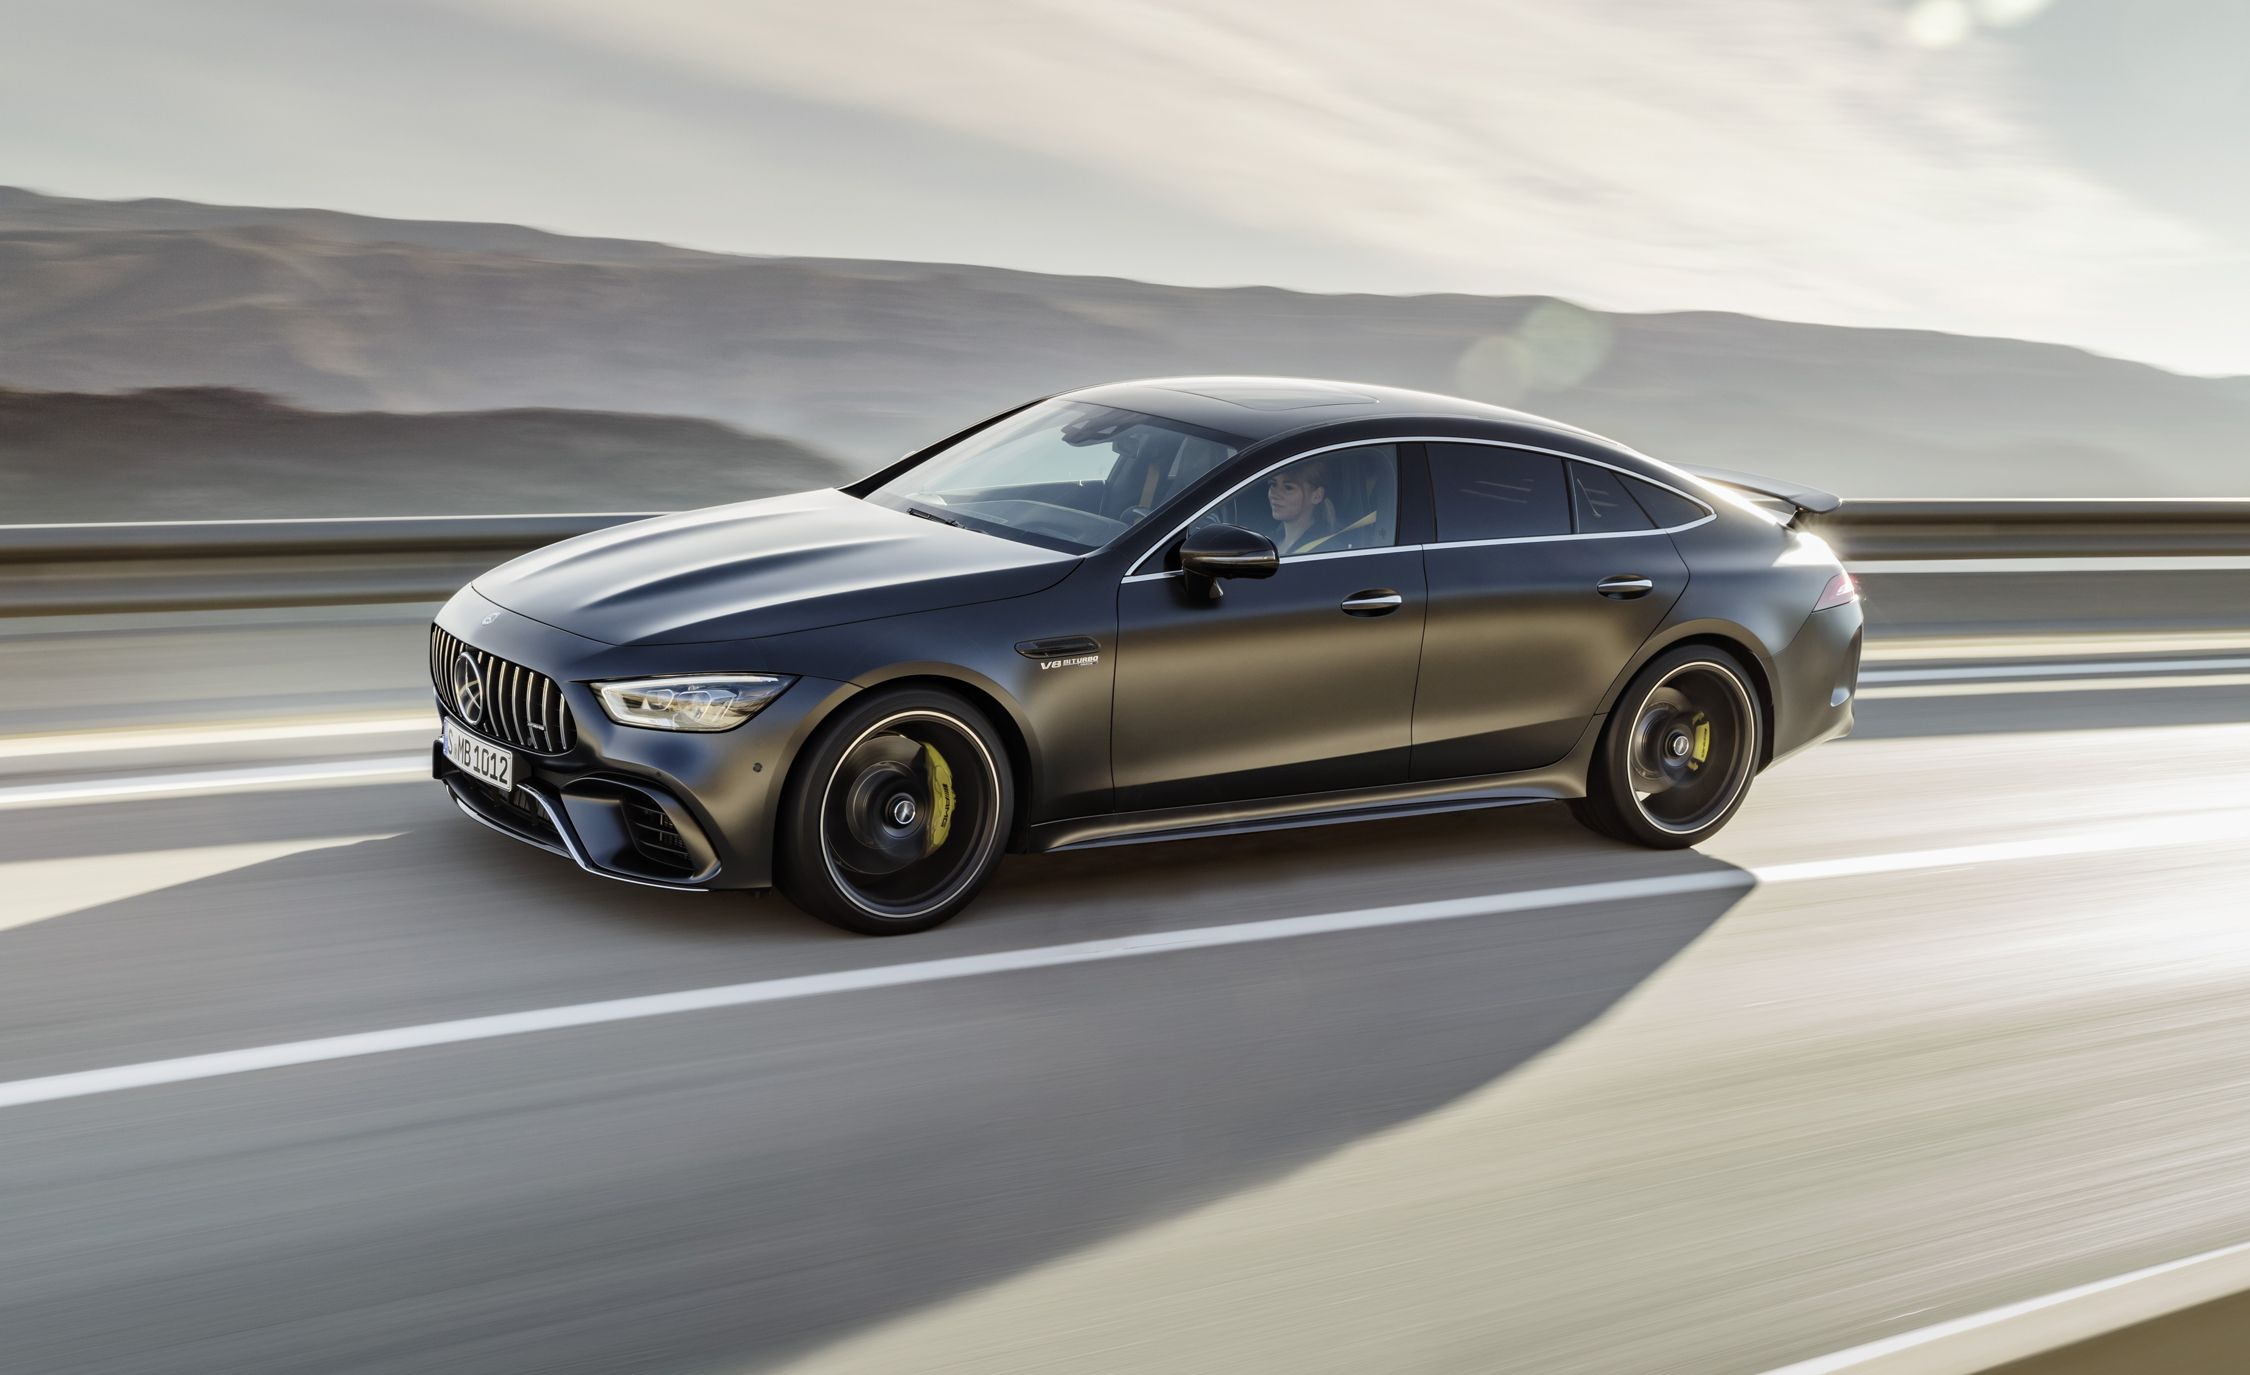 Mercedes Benz Lease >> 2019 Mercedes-AMG GT 4-Door Coupe Officially Unveiled, Packs up to 630 HP | News | Car and Driver